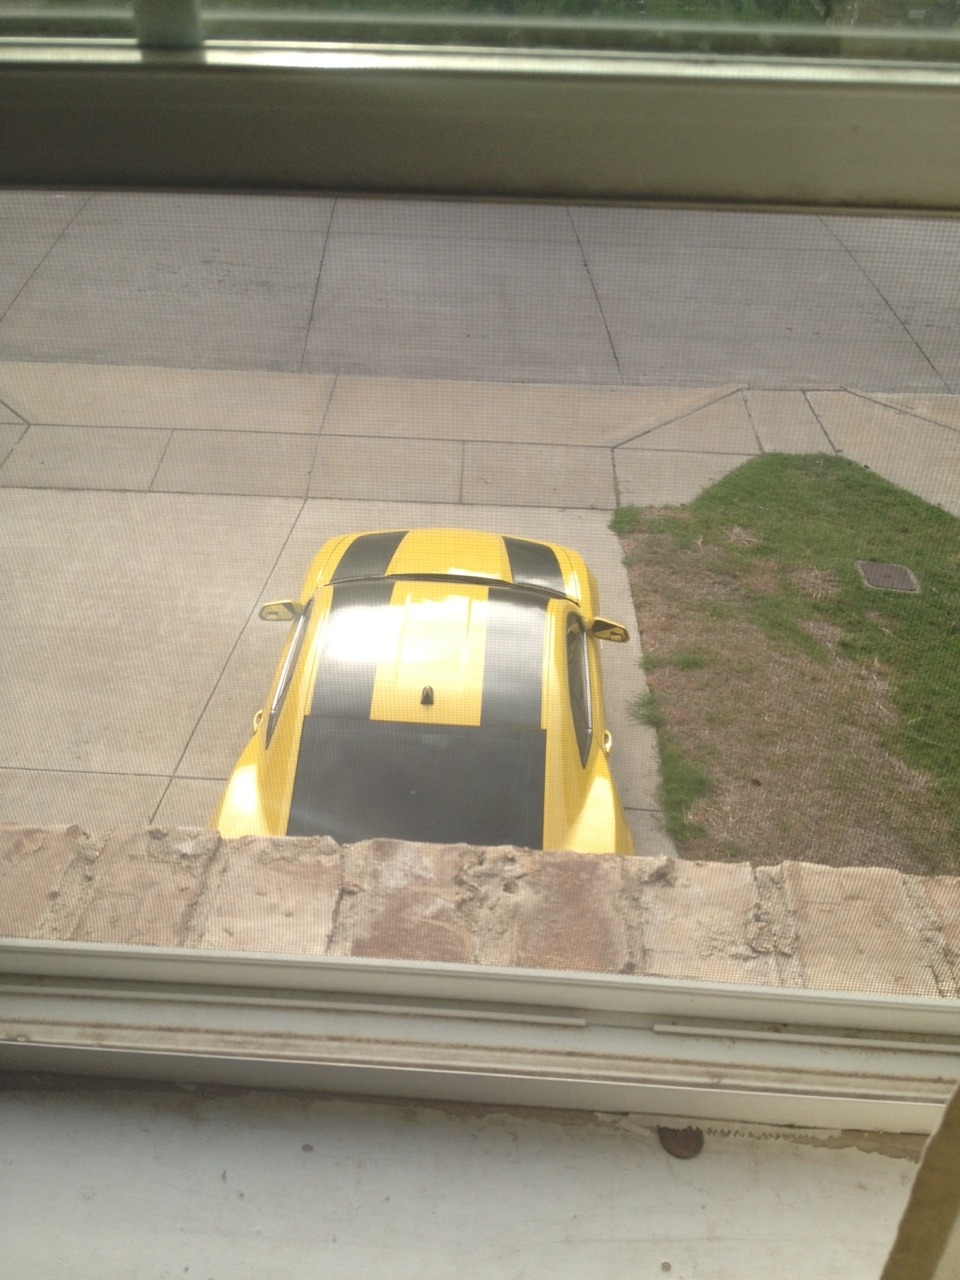 """staticartillery:  So this little kid dressed in a Bumblebee costume came across my dads camaro which is yellow with black stripes and the little kid walked up to it saying """"You're not the real Bumblebee!"""" And then he slapped the front of the car and right as he did, the car started up because my dad was watching through our security cameras and the camaro can be started remotely. This kid nearly fell as he ran away yelling and it's great knowing that he'll probably always remember the day he met Bumblebee."""